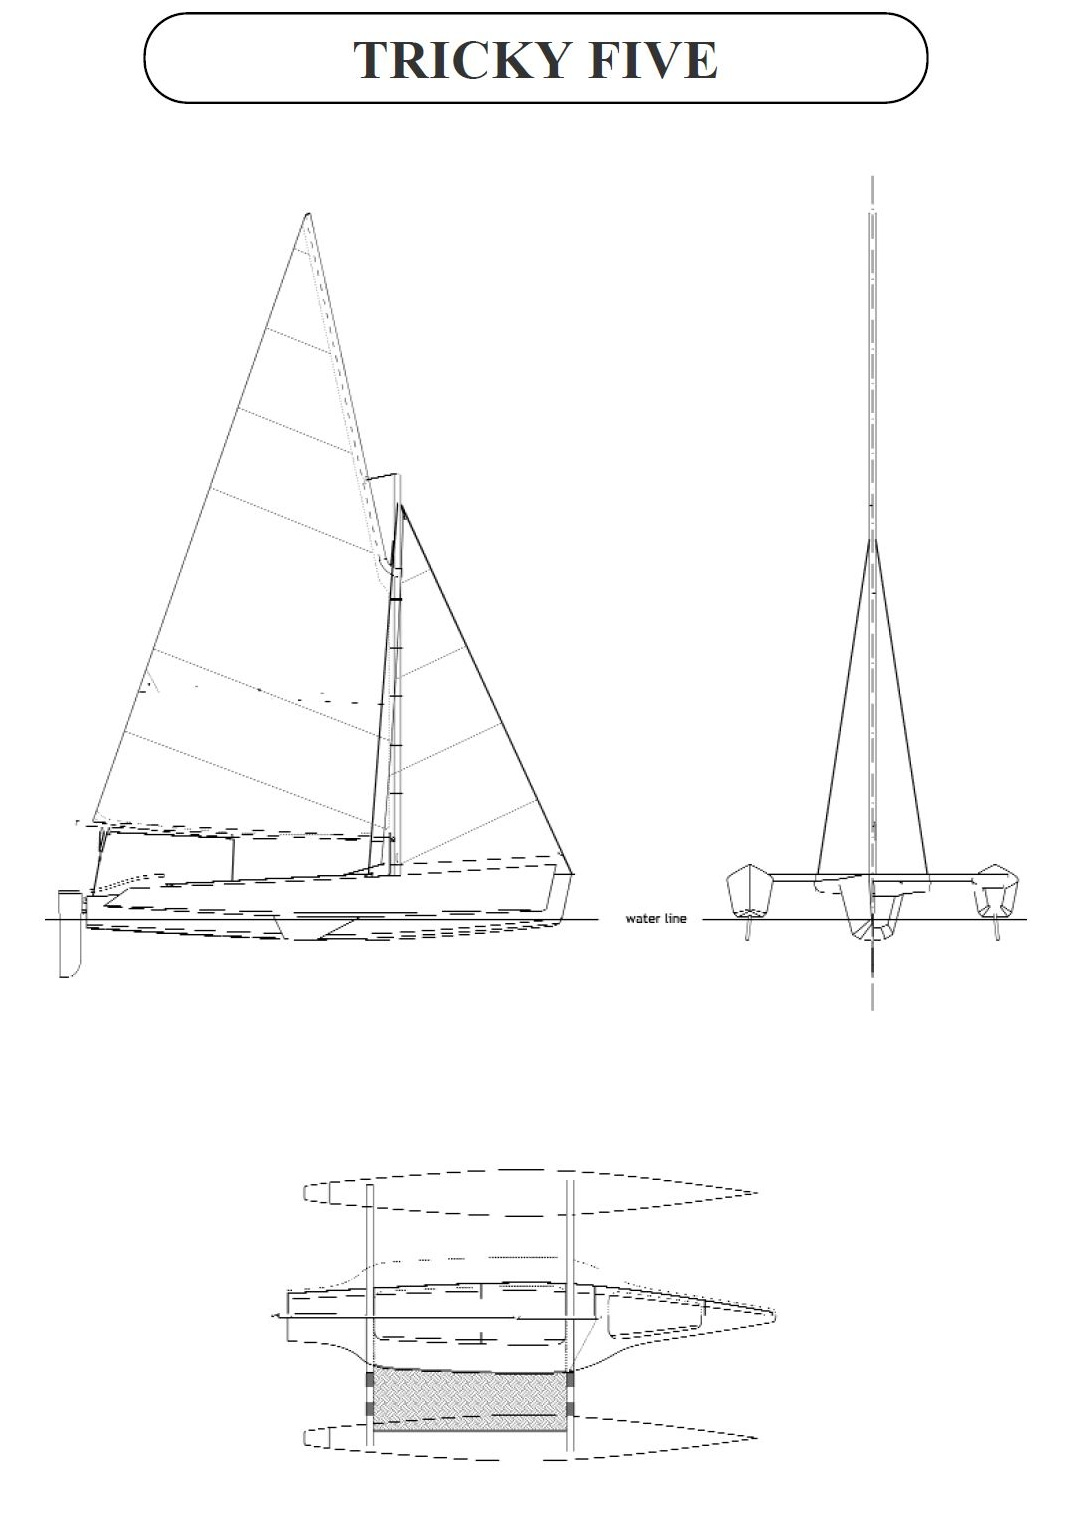 2 New Trimaran Building Plans at Duckworks | Small Trimarans